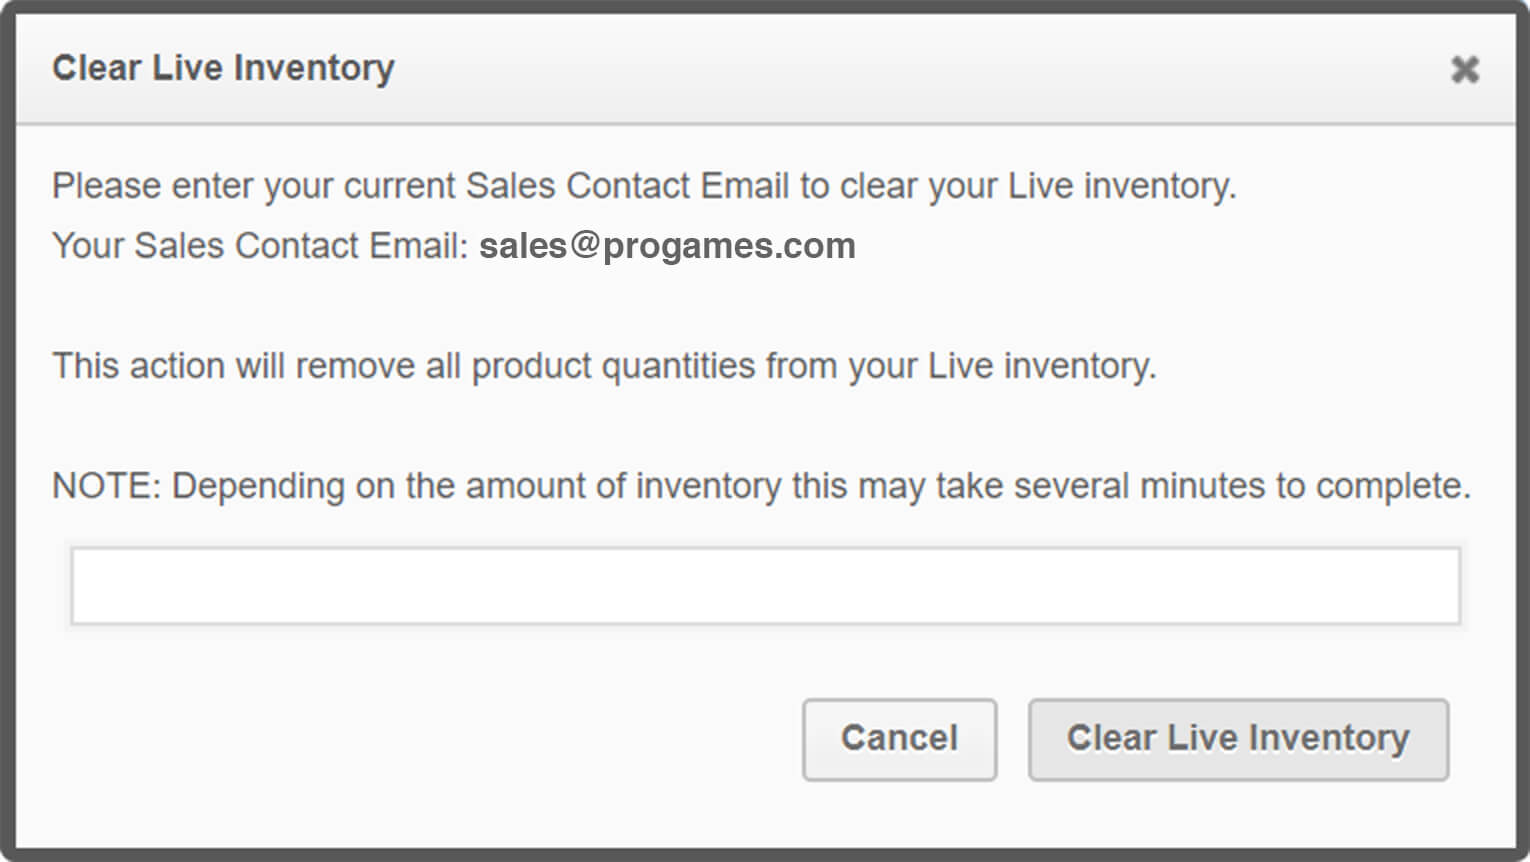 Clear-Inventory-and-Move-to-Live-Clear-Live-Inventory2_2x.jpg